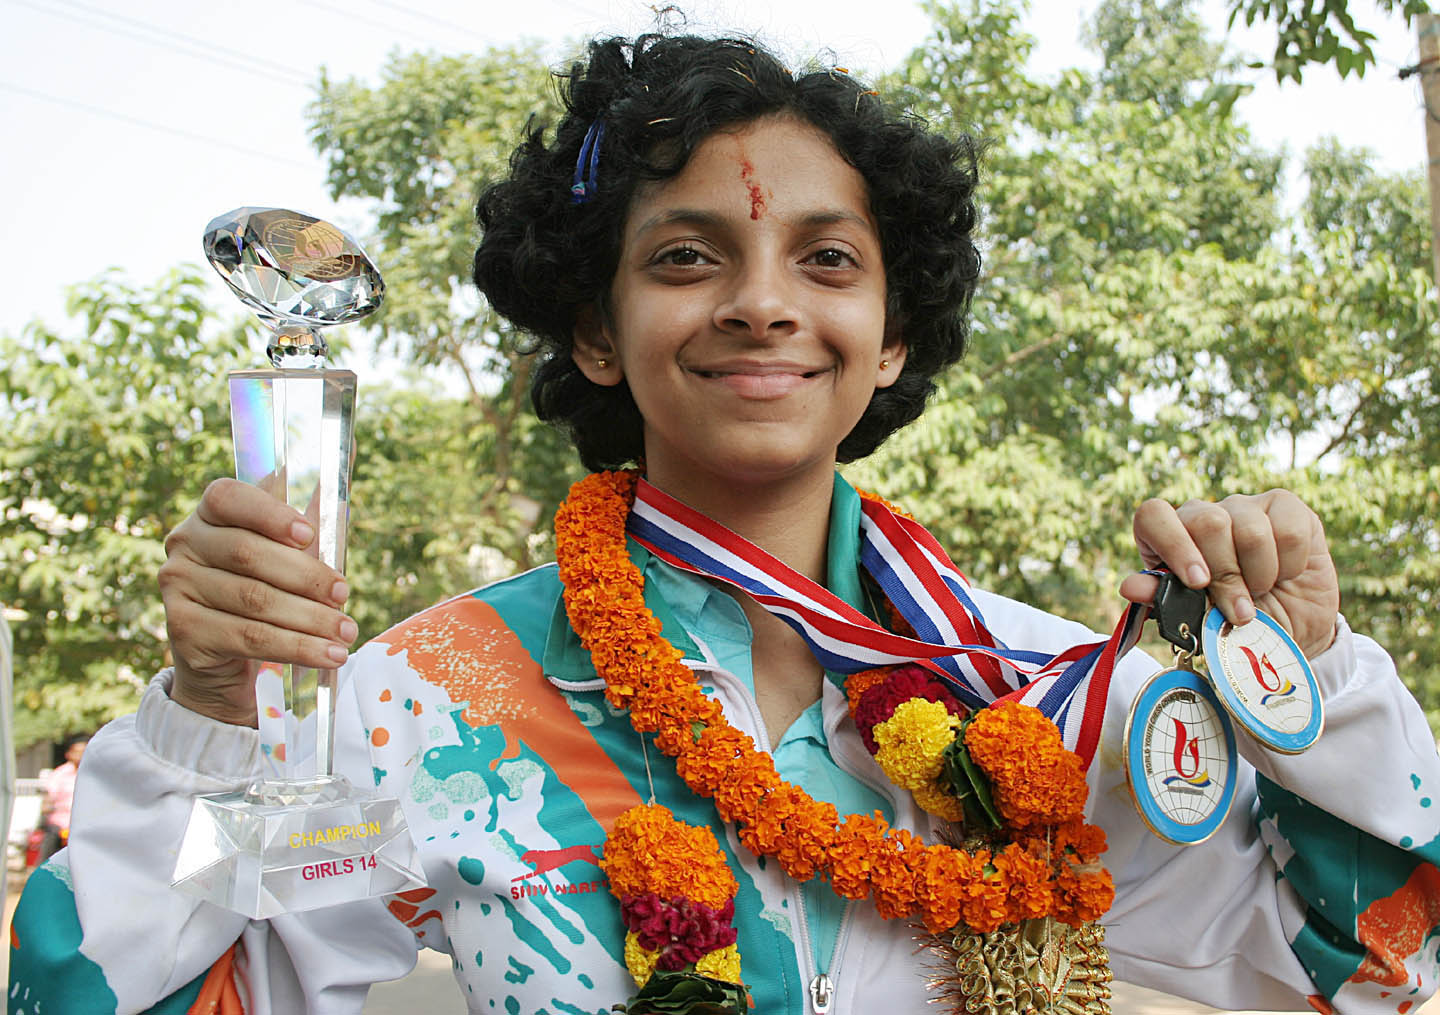 Orissa chess star <b>Padmini Rout</b> displays her laurels in Bhubaneswar in <b>2009.